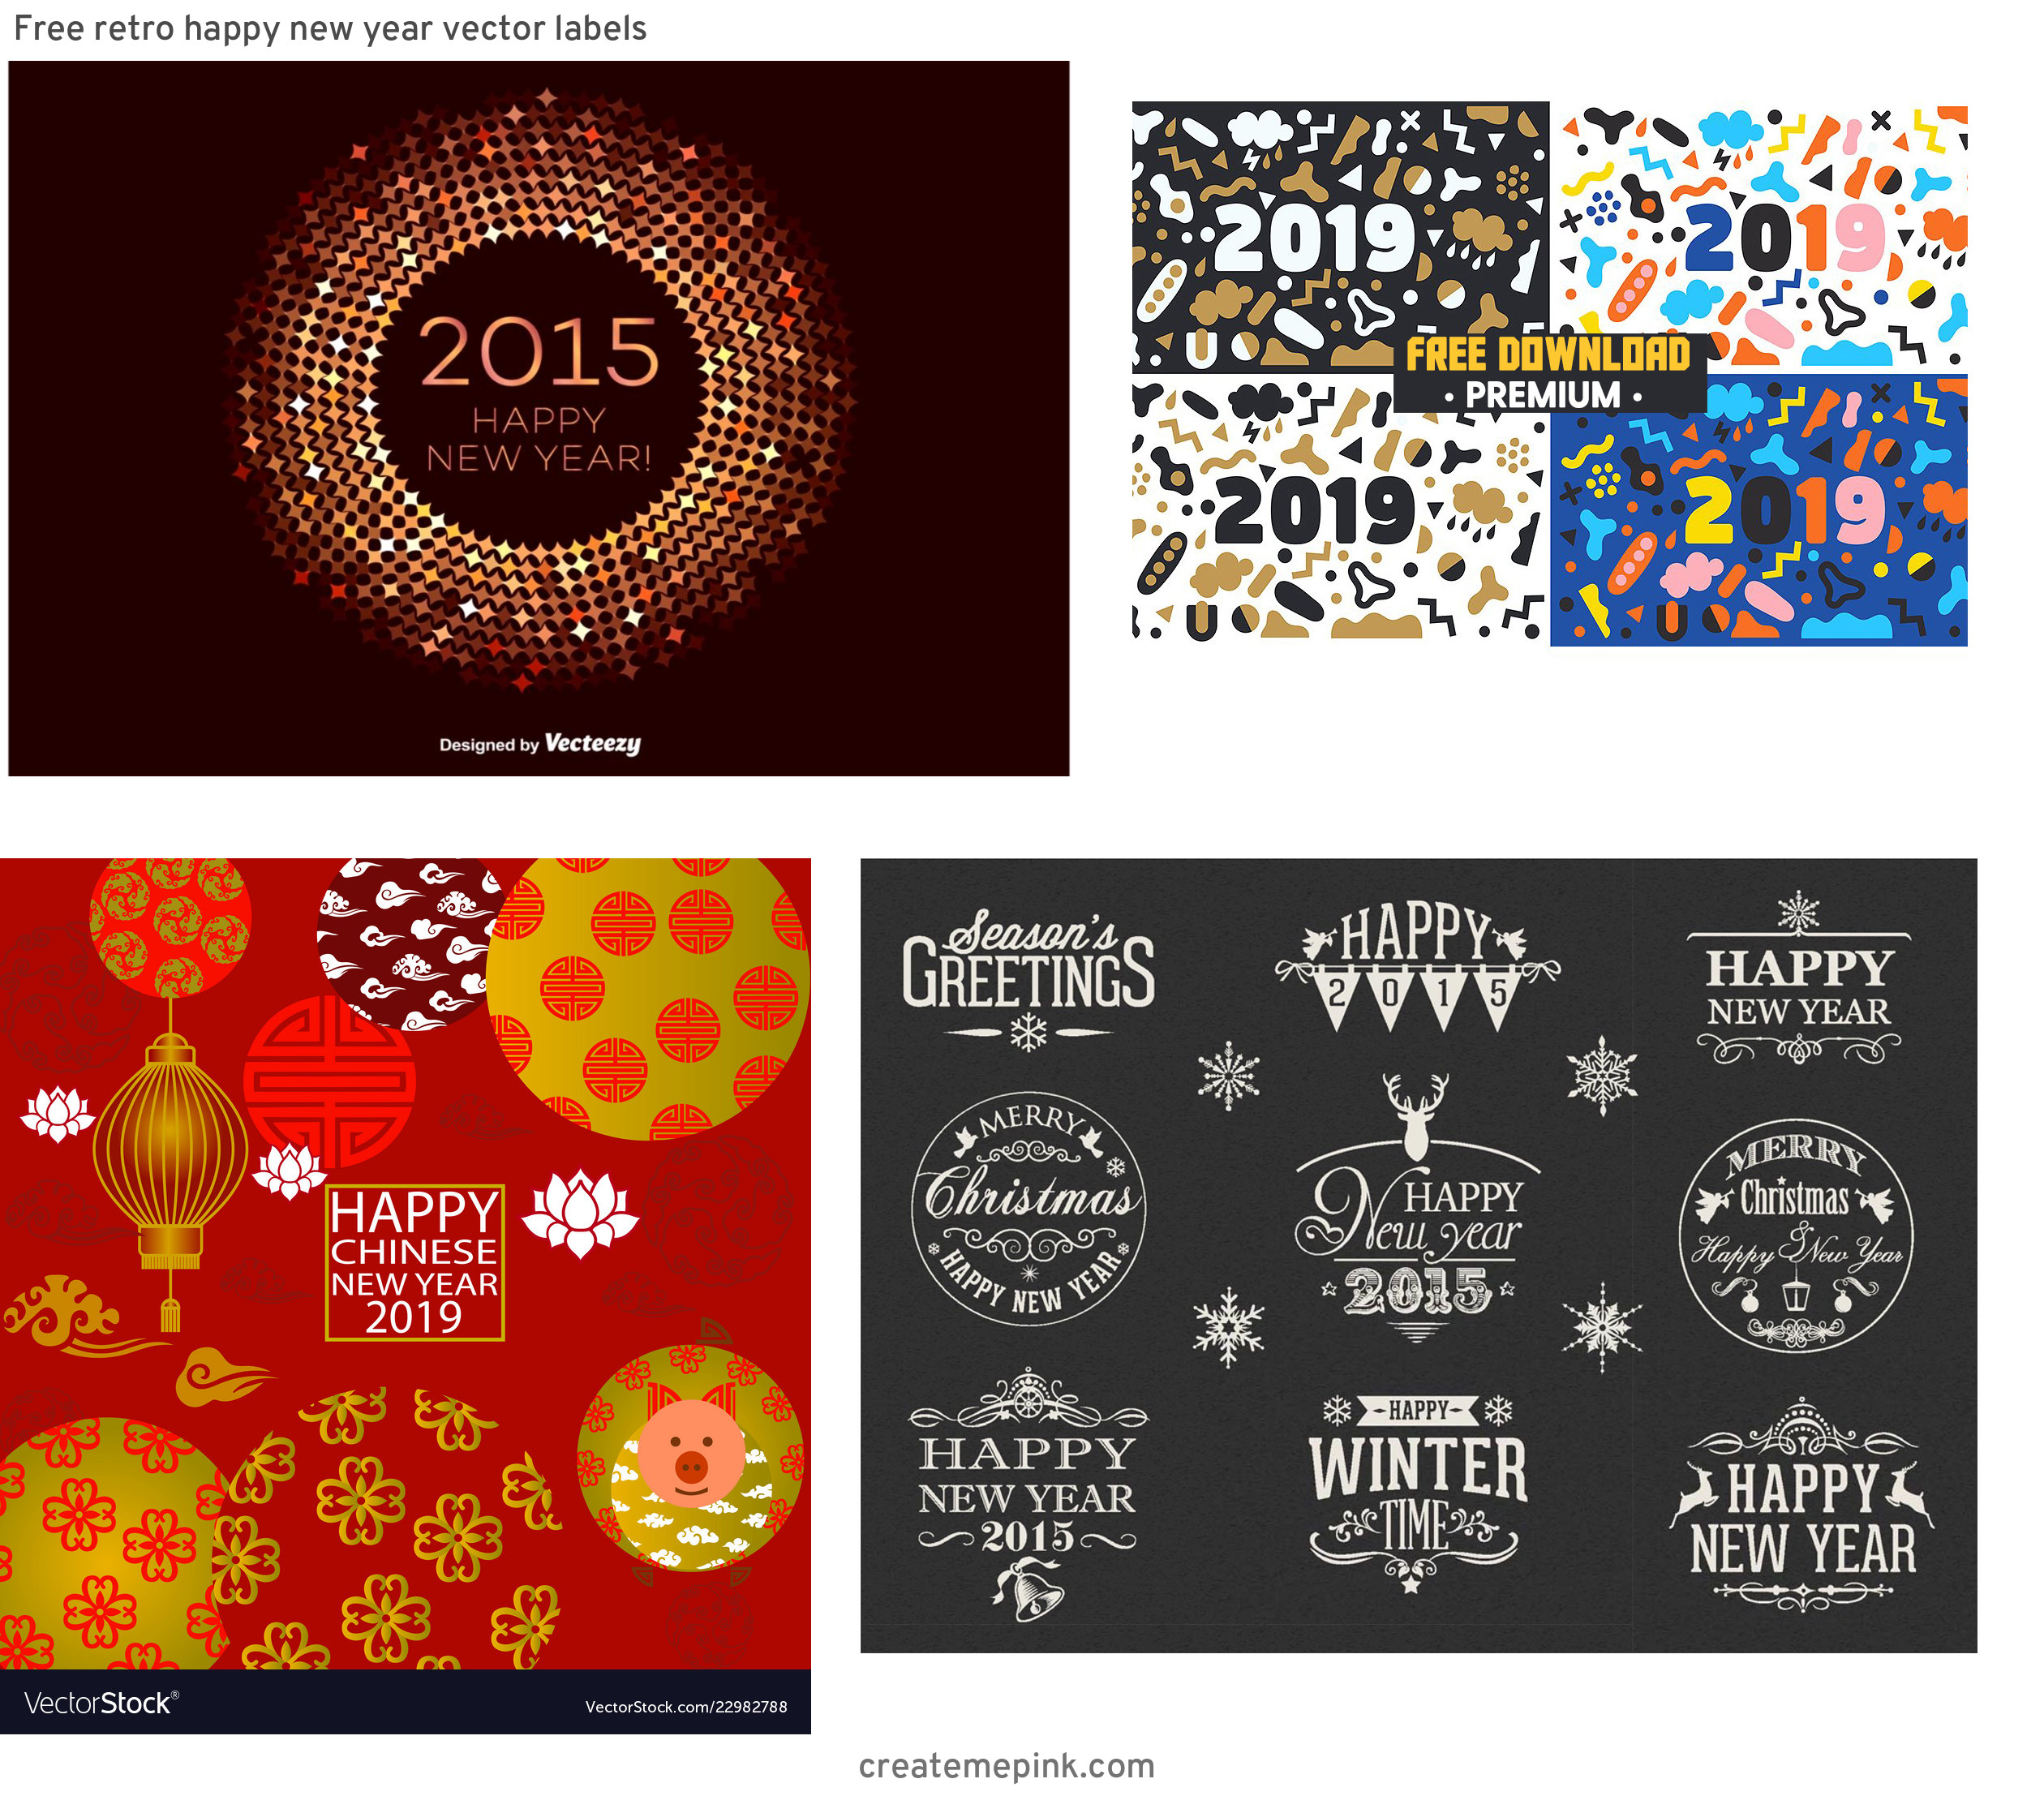 Free New Year Vector: Free Retro Happy New Year Vector Labels